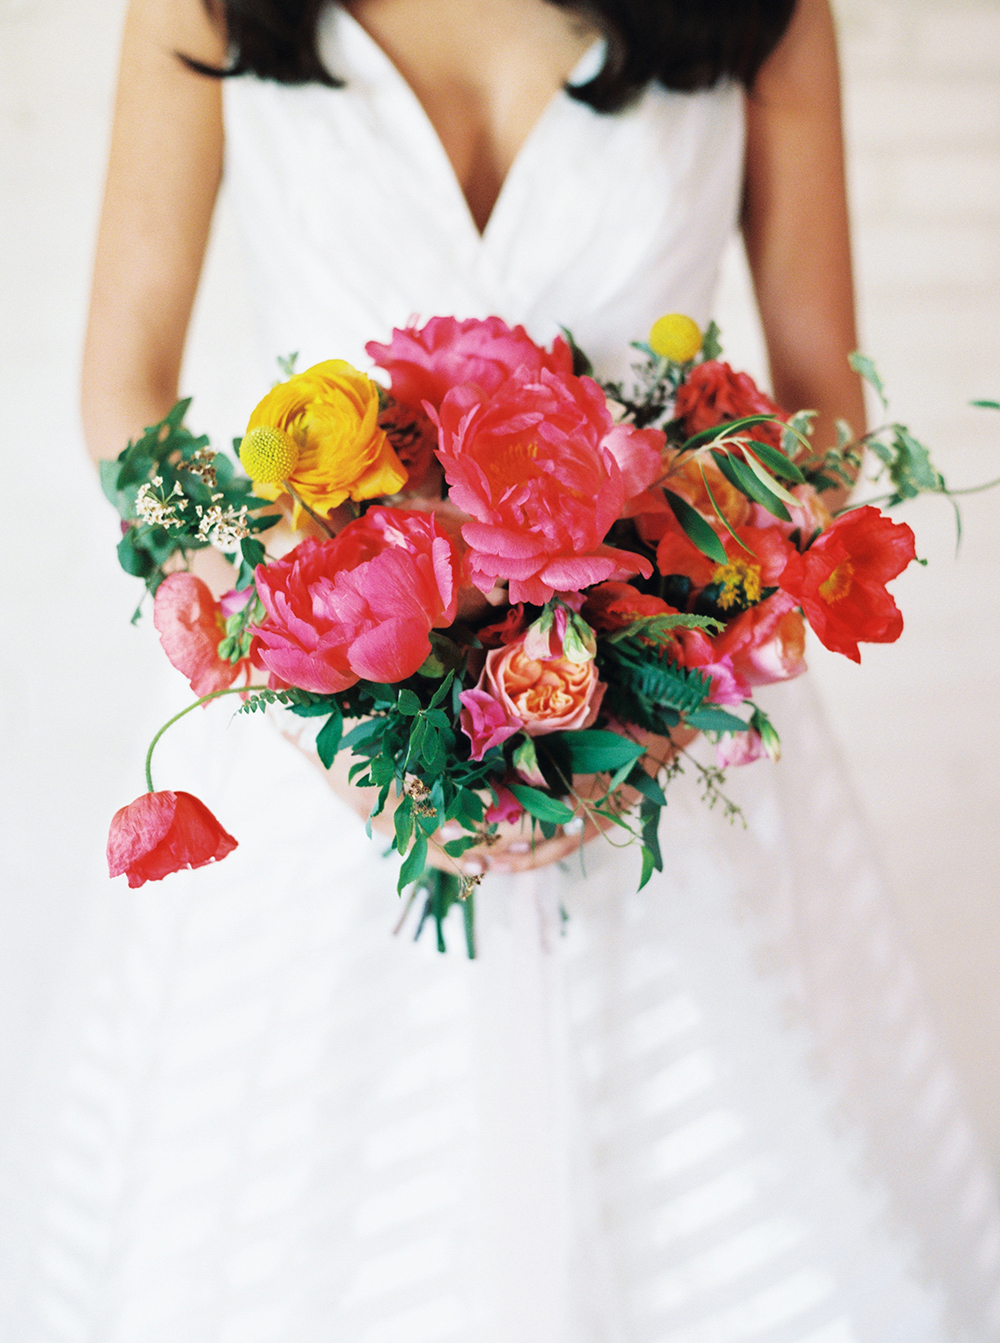 Vibrant Summer Wedding Inspiration with Fun Colors - photo by Jessica Gold Photography http://ruffledblog.com/vibrant-summer-wedding-inspiration-with-fun-colors